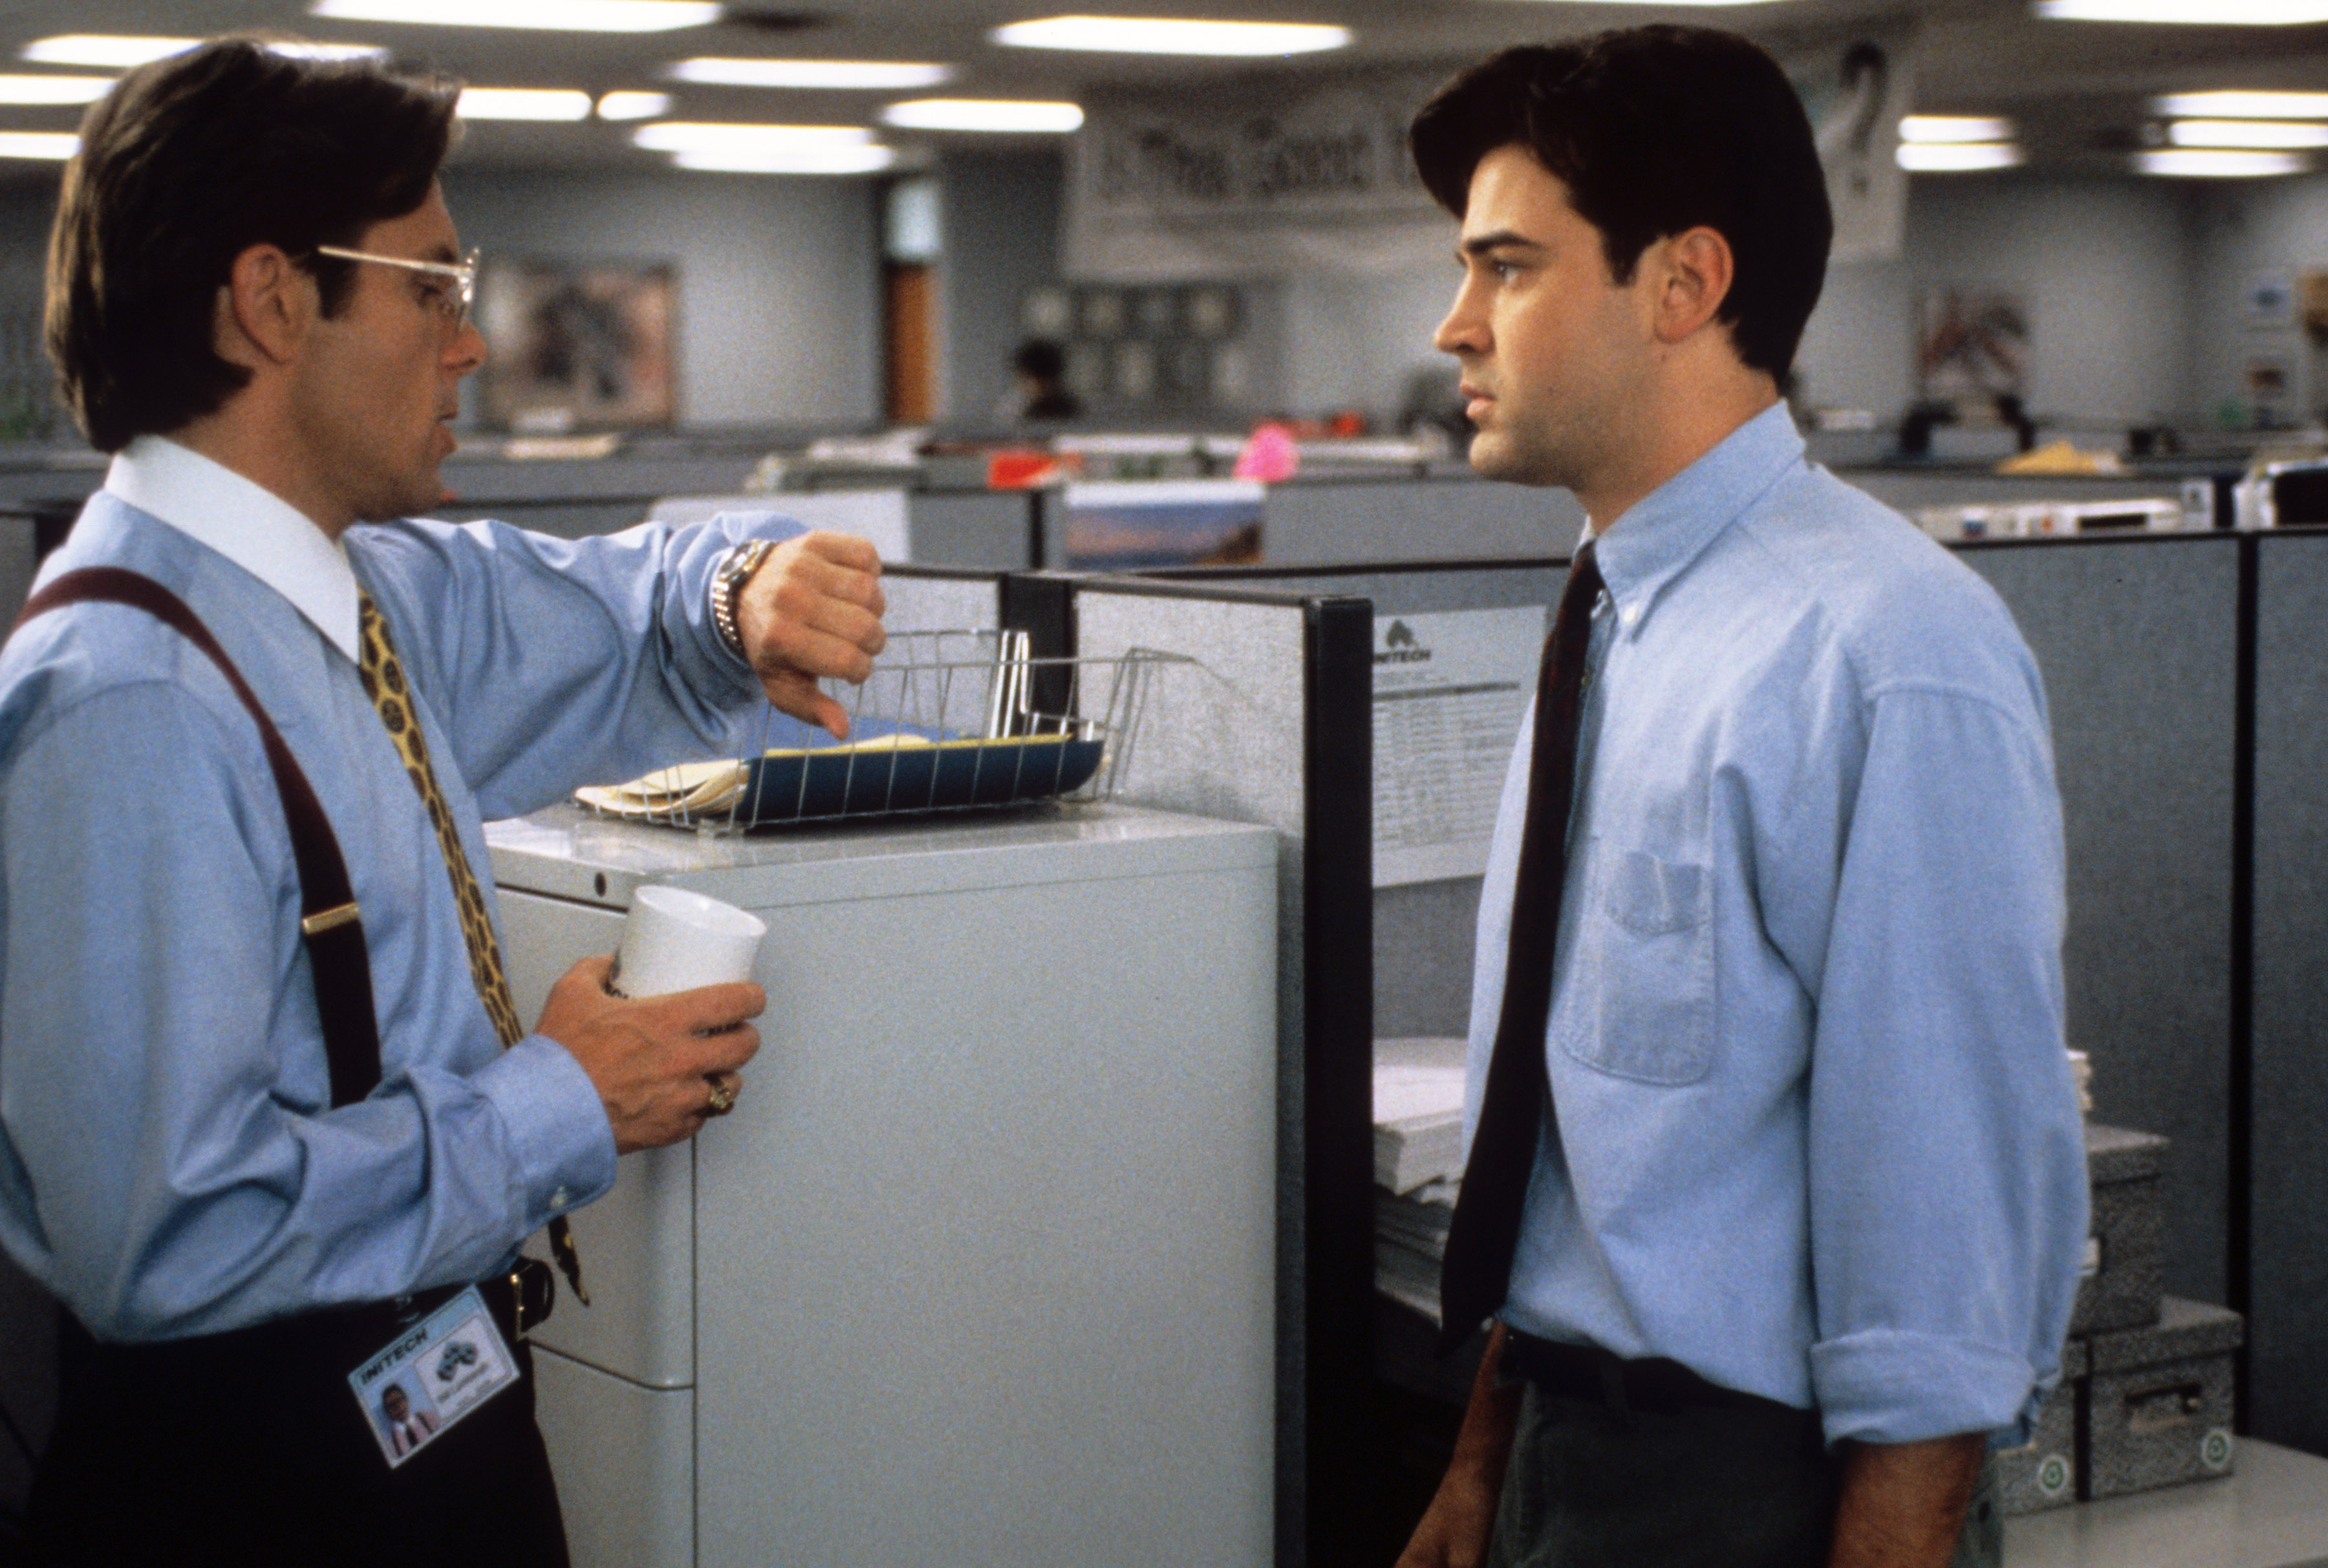 OFFICE SPACE, Gary Cole, Ron Livingston, 1999.